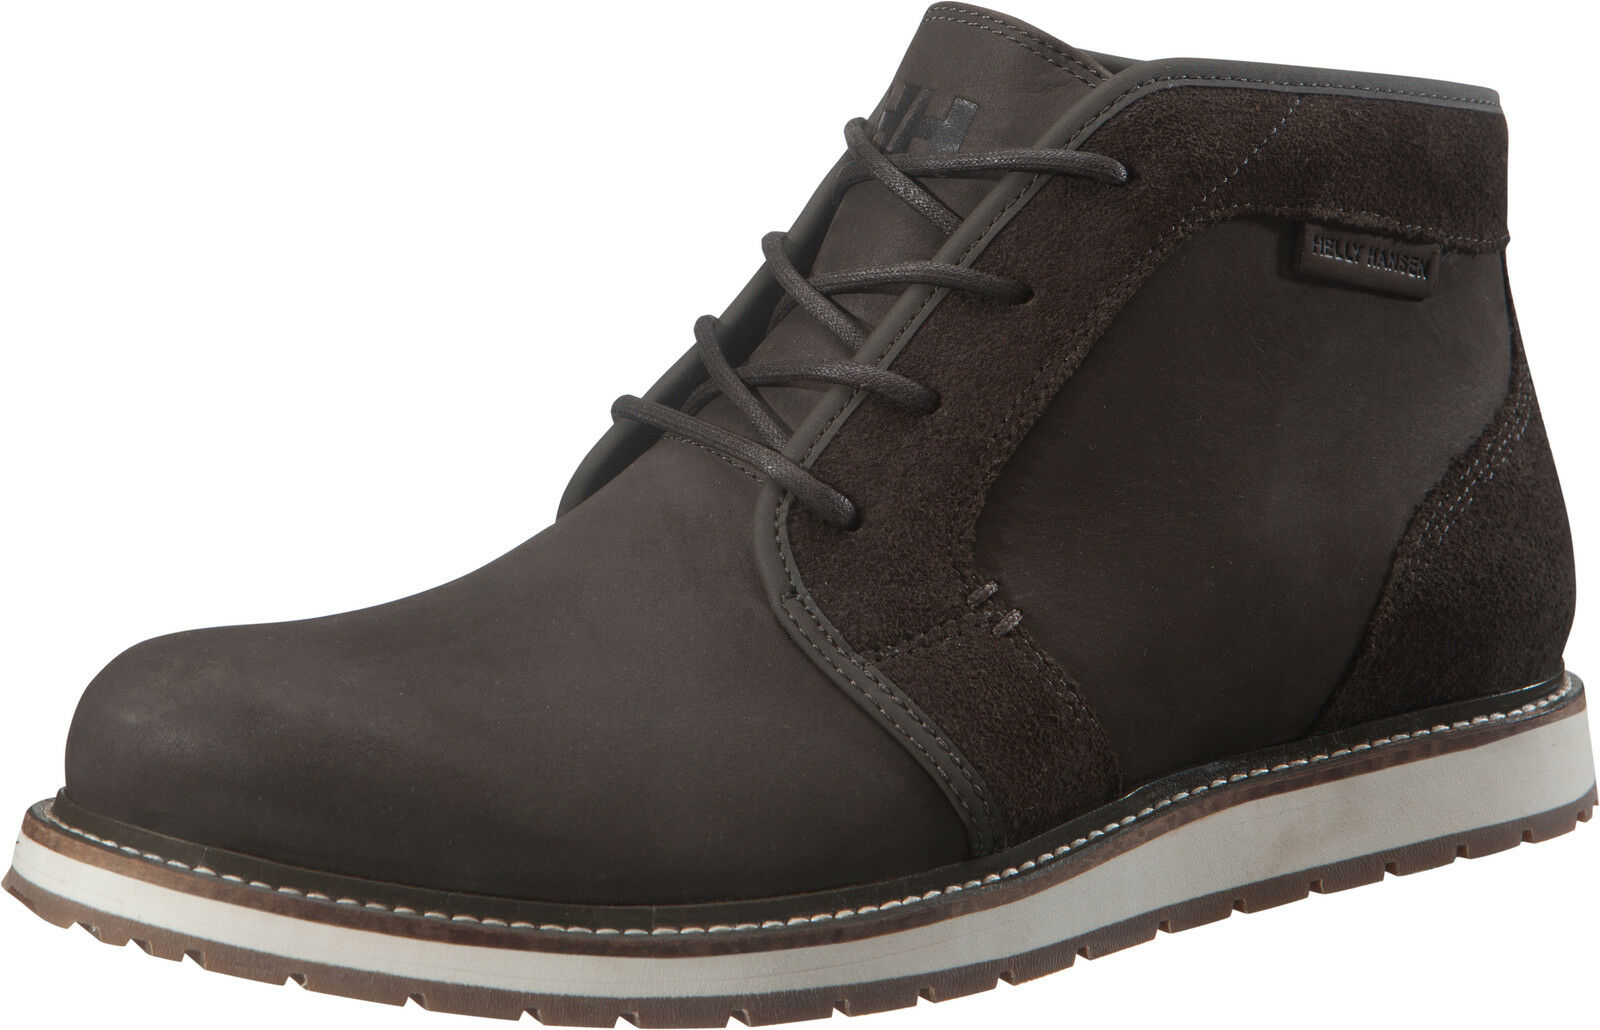 Helly Hansen Borghall Men's Boot 10871 707 Espresso Angora Sperry Gum NEW